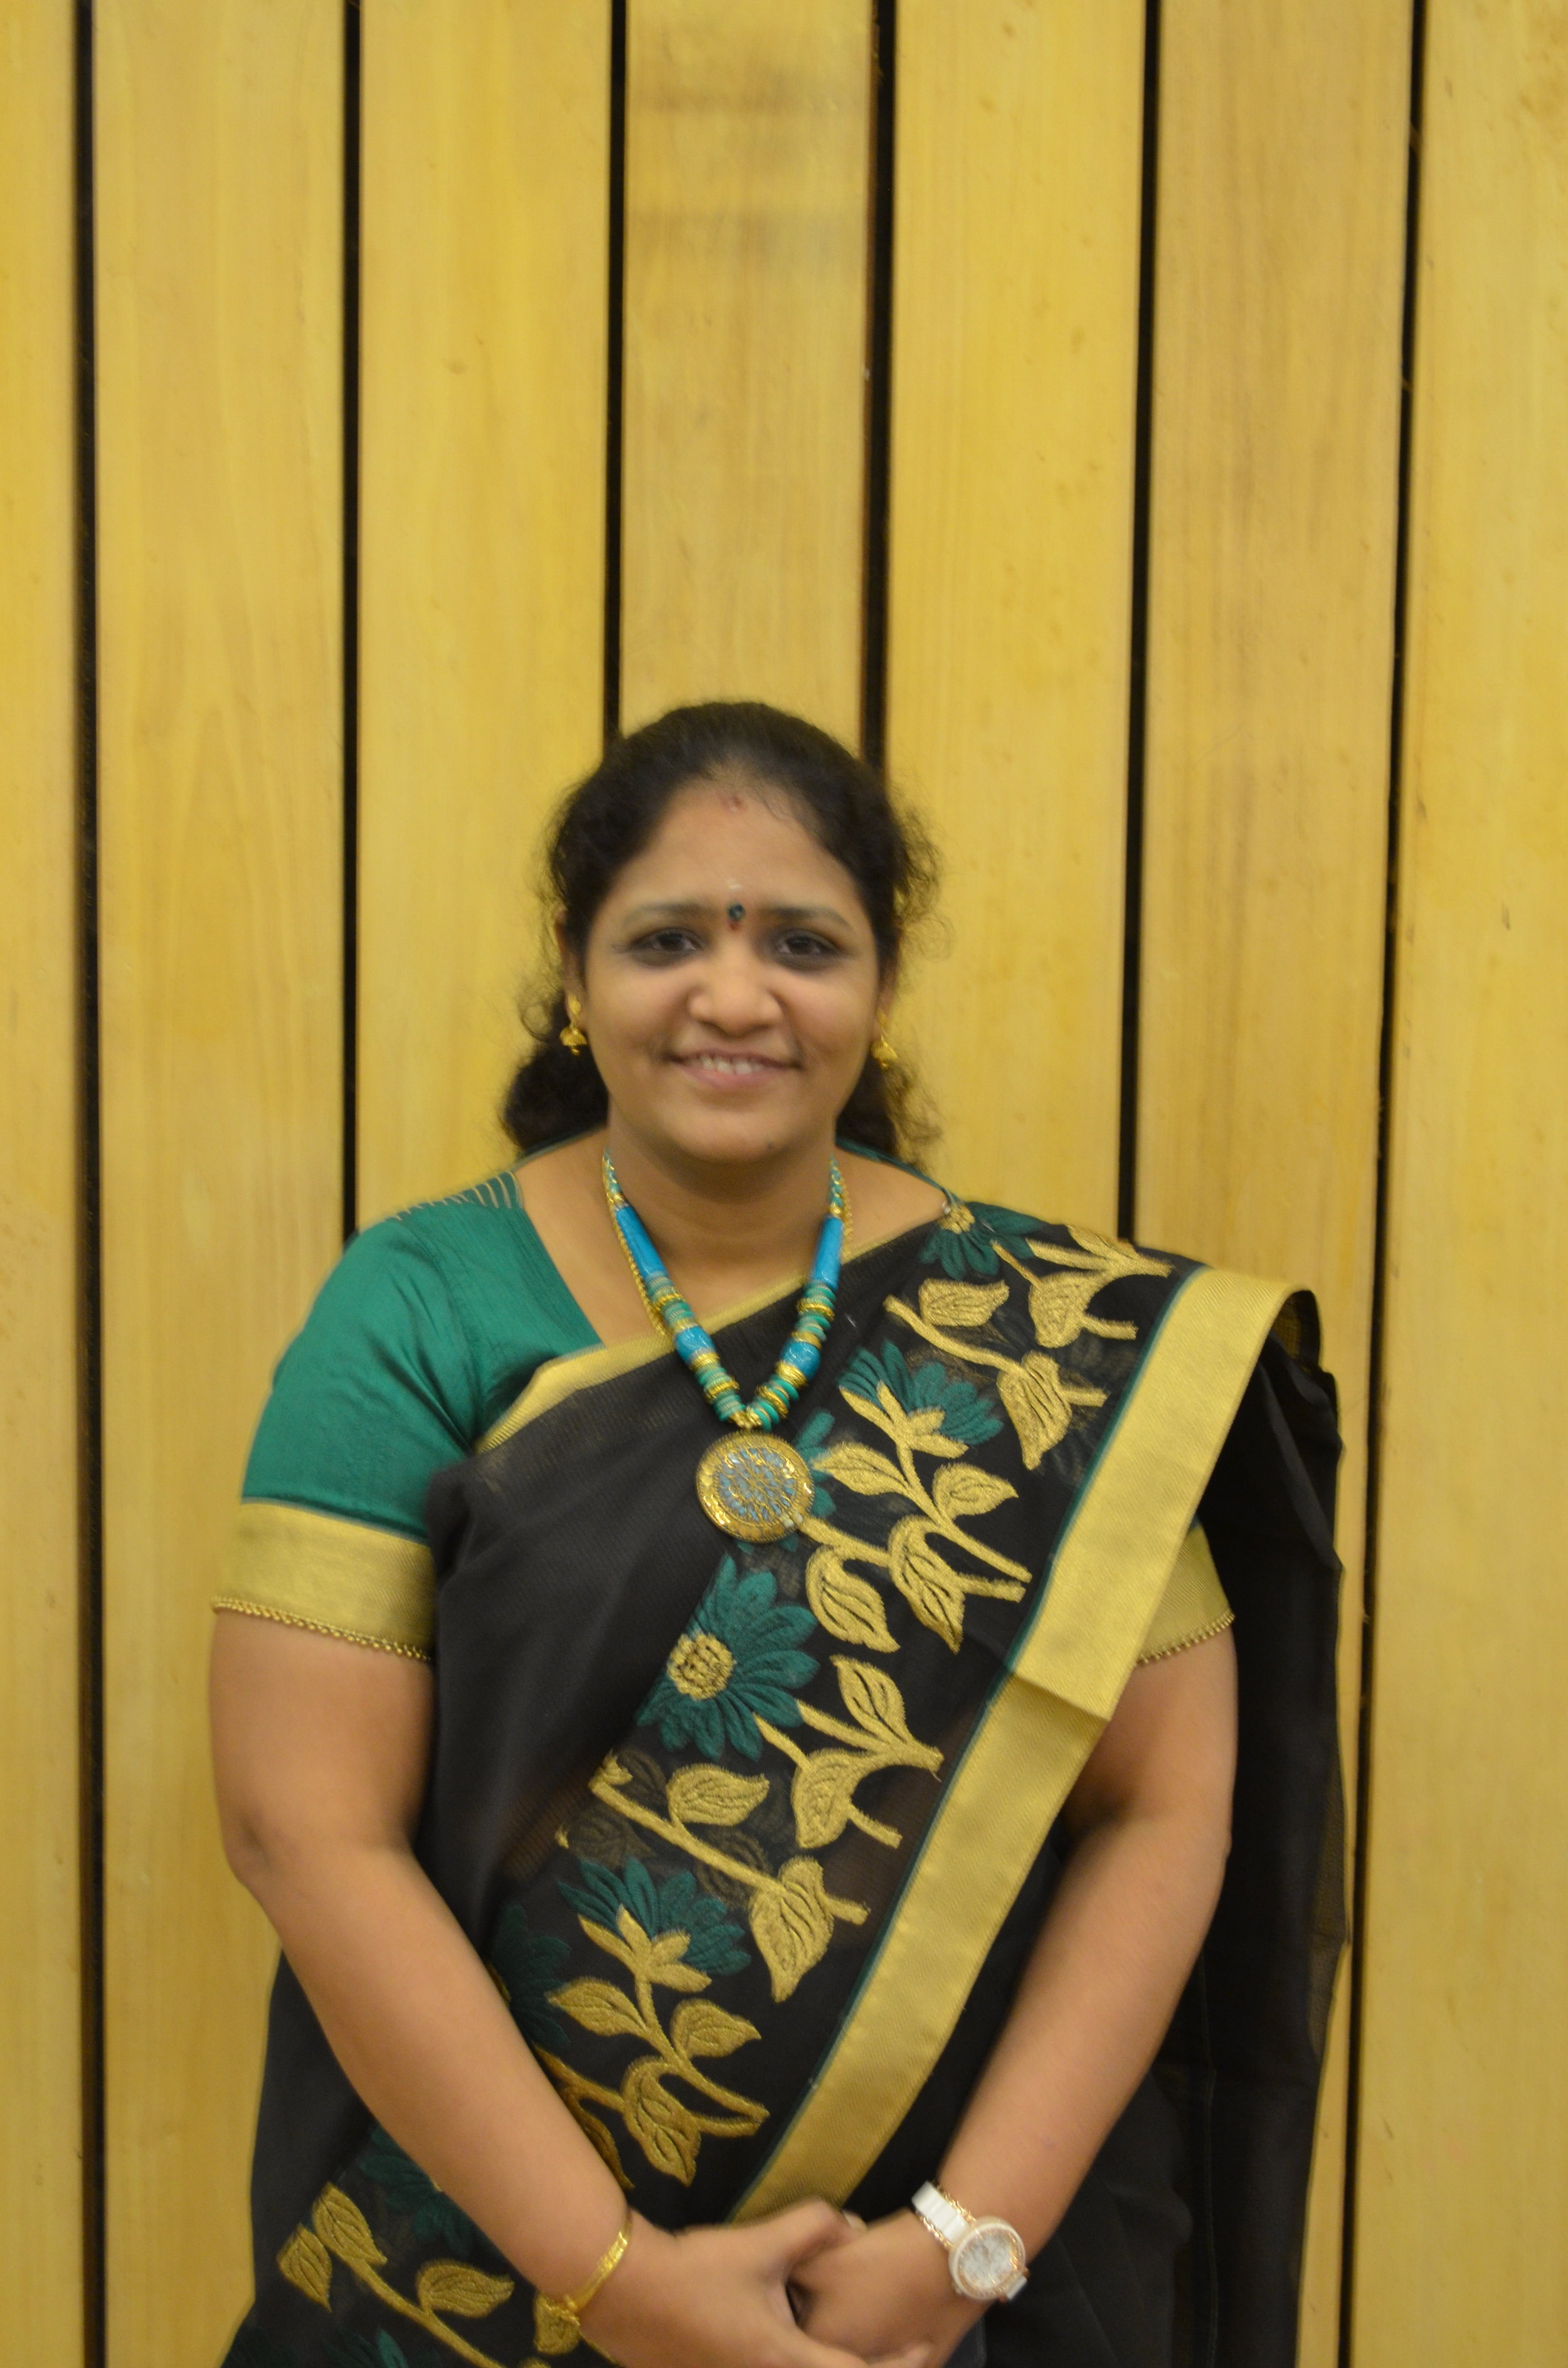 "- Dr.T.N.UMA MAHESWARI is working as a Professor in the Department of Oral Medicine and Radiology. Her association with Saveetha University dates back from2002to till date.Shehas 11 years of PG teaching experience and recipient of five awards namely Jaya Group of Institutions Award for Evidence based novel diagnosis of early malignant changes in oral potentially malignant disorder ,Best dissertation, Best article and Best paper presentation awards received from IAOMR (INDIAN ACADEMY OF ORAL MEDICINE AND RADIOLOGY). She also received a title MABMS (MEMBERSHIPOF INDIAN ASSOCIATION OF BIOMEDICAL SCIENTIST) for her contribution in the field of Biomedicine. She had guided 4 PG dissertations andhad completed 10 short term projects and is currently guiding around 10 ongoing short term projects and two dissertations. She had received ICMR grant in the year 2013 for STS proposal on ""Expression of salivary biomarkers -Alkaline phosphatase and lactate dehydrogenase in oral leukoplakia which received ""Dr. Leela Krishnamurti Memorial Award"" in 34th Annual Conference IABMS held at Dr.ALM PGIBMS, Chennai. She has contributed two chapters in Exam Preparatory Manual for Undergraduates which is an Elseiver Publication. She has published 52 articles in various national and international journals. She has been a resource person in Journals namely Biomedicine, JOOO,Internet Journal of Forensic Medicine &Toxicology & Indian Journal of Forensic and Community Medicine and has served as EC member of IABMS. She has delivered 13 invited lectures and has been in theorganising team of 10 conferences, chaired 15sessions and has attended 40 conferences, 24 workshops and has served as external examiner in various Universities.She is an editor in chief of International Journal of Forensic Odontology(IJFO) which is published by Wolters Kluwer , Medknow publication.Conferences attended - 41Workshop - 25Publications - 75"